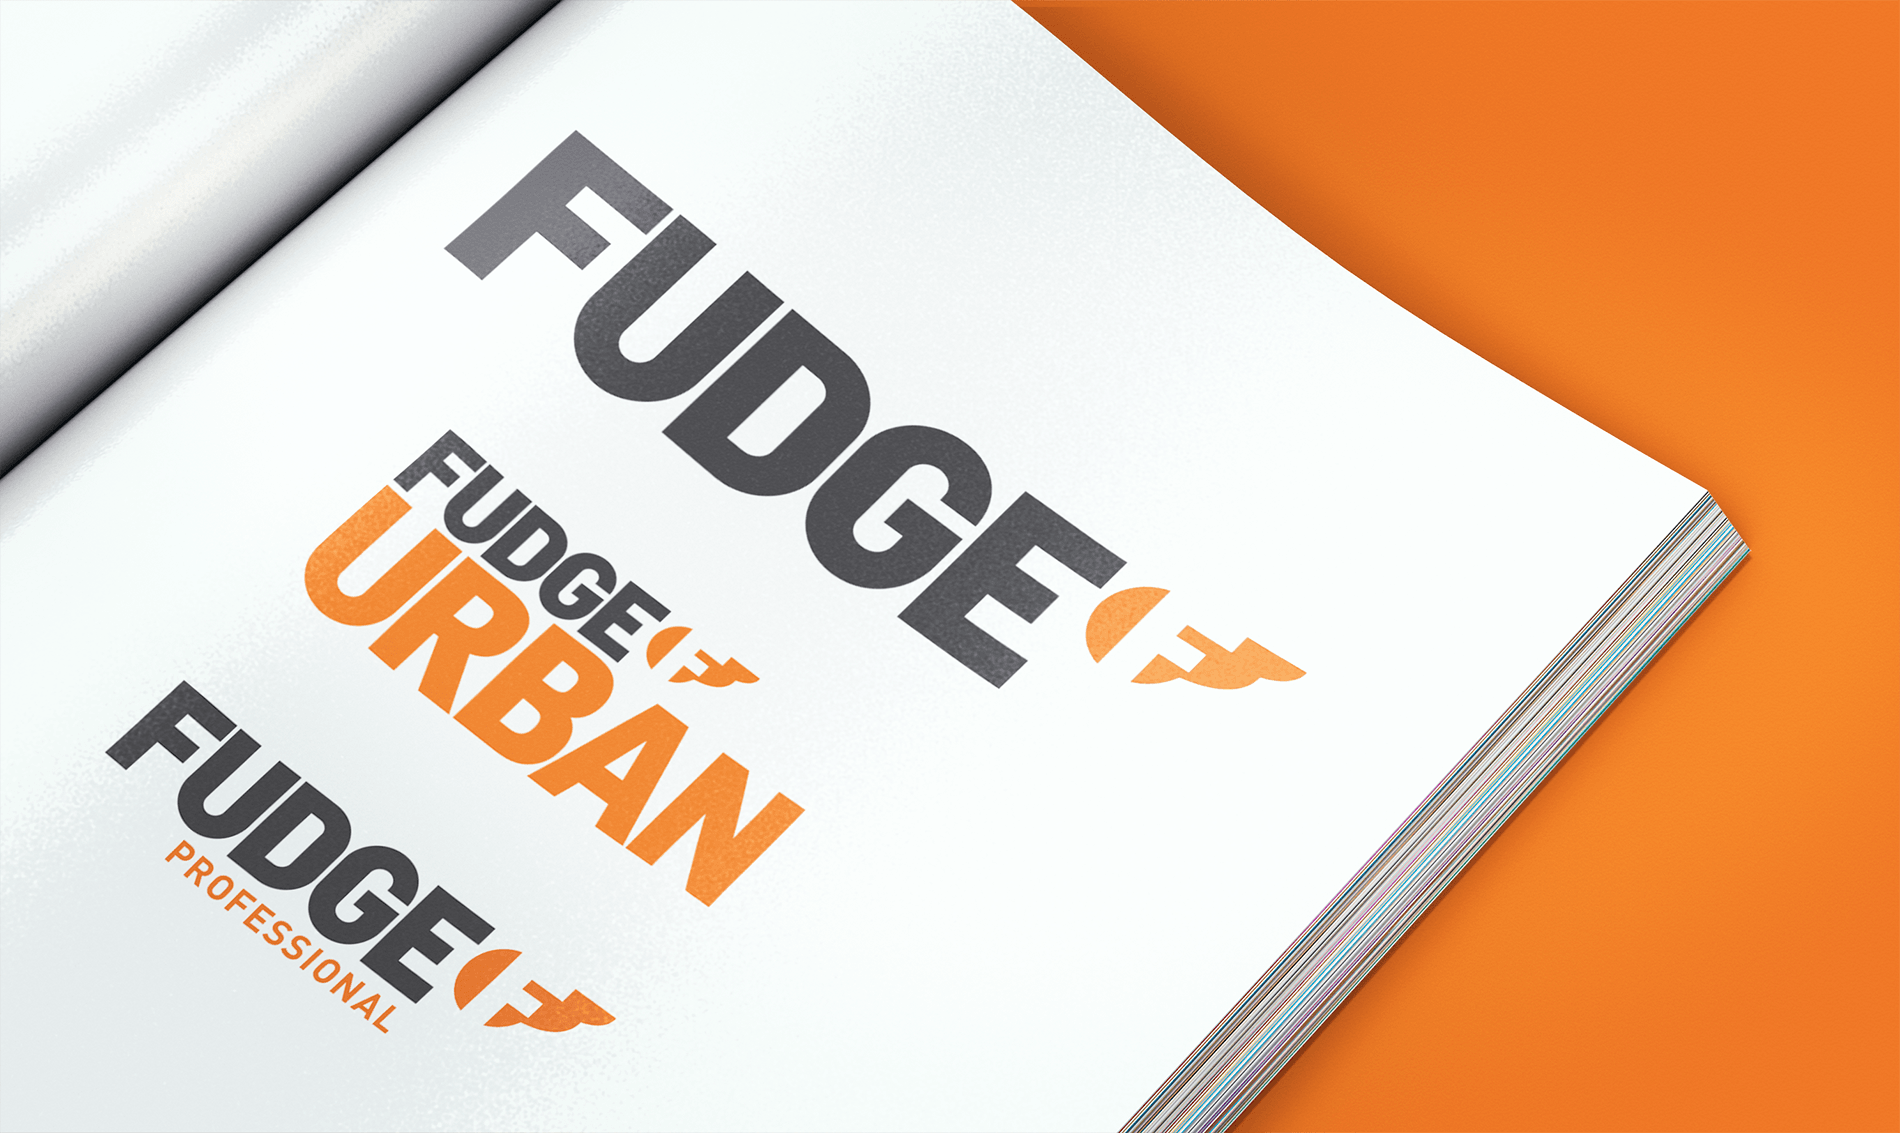 Open spread of logos for Fudge, Fudge Urban and Fudge Professional hair products